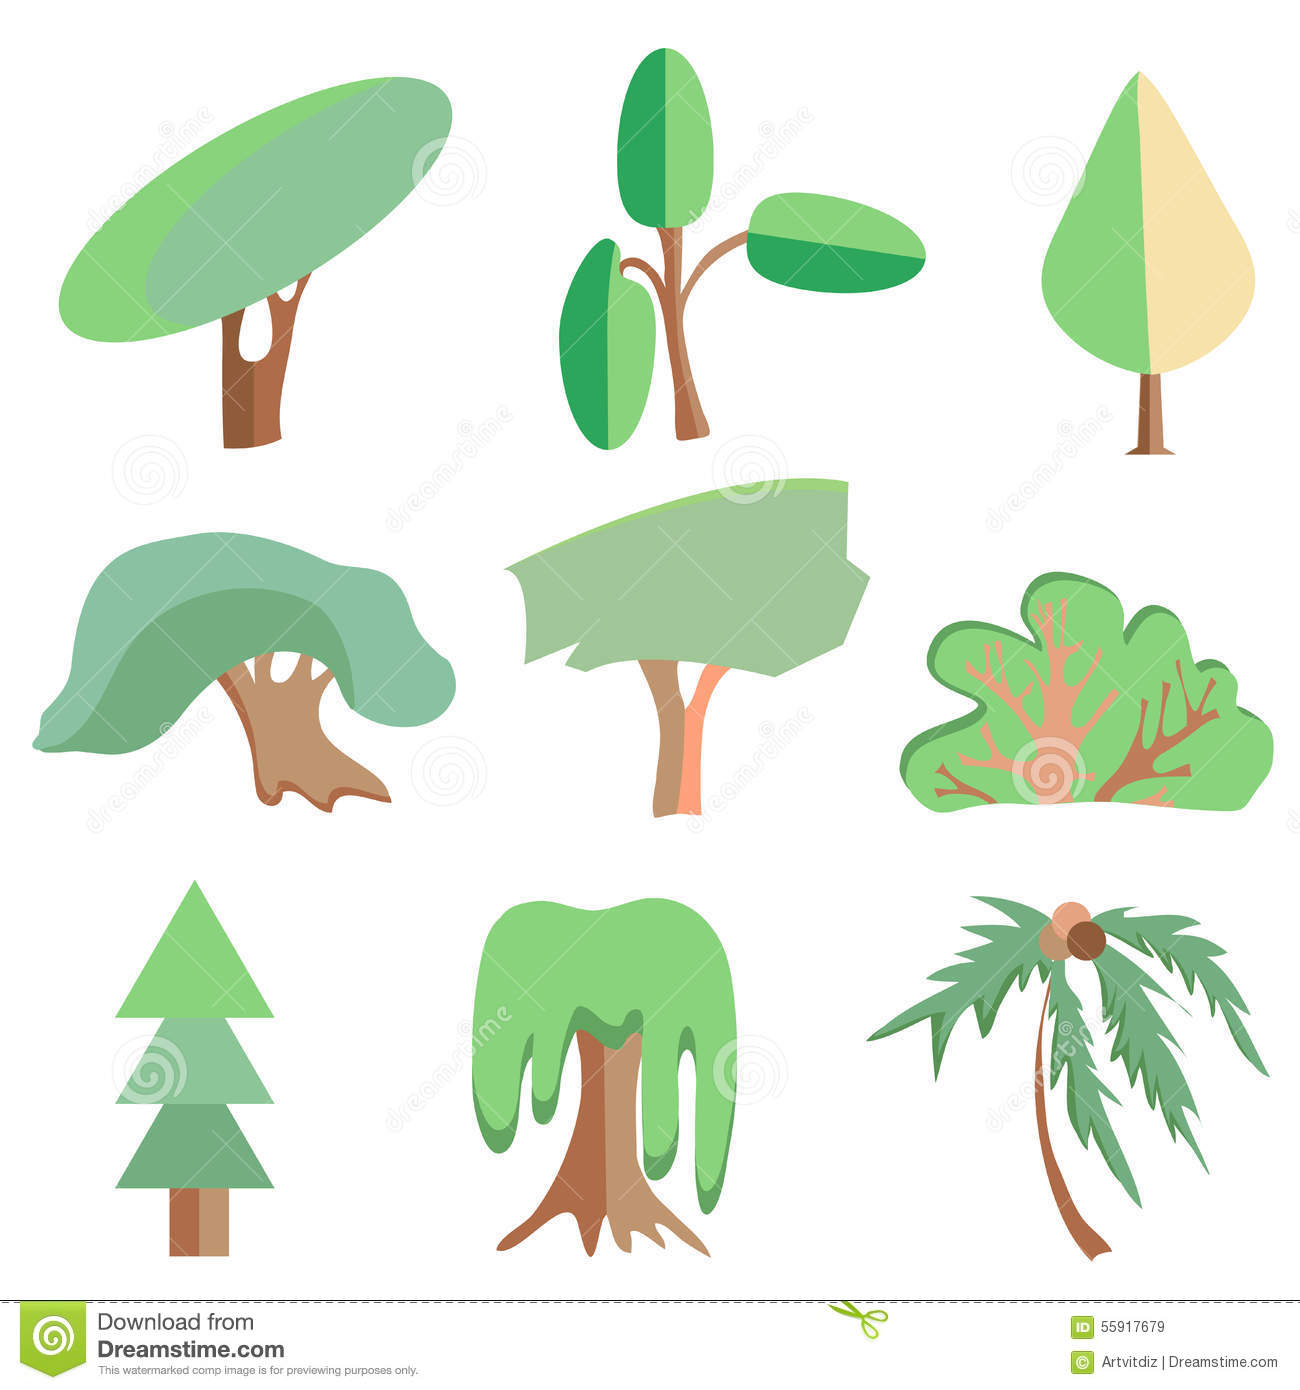 Trees palm oak spruce bush willow symbolic stock vector trees palm oak spruce bush willow symbolic biocorpaavc Image collections